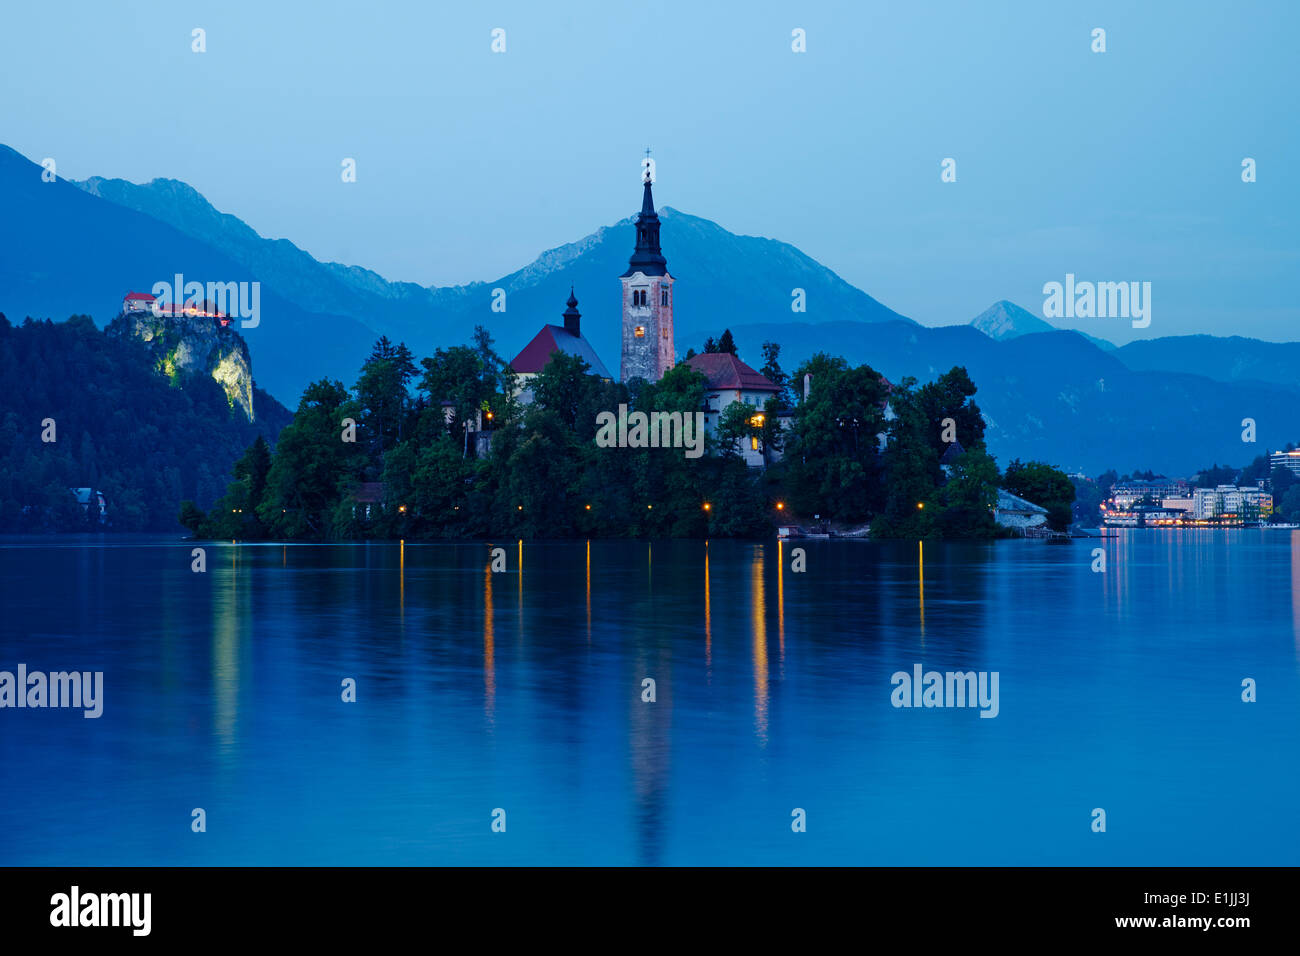 Slovenia, Bled, Lake Bled and Julian Alps, church of the Assumption - Stock Image